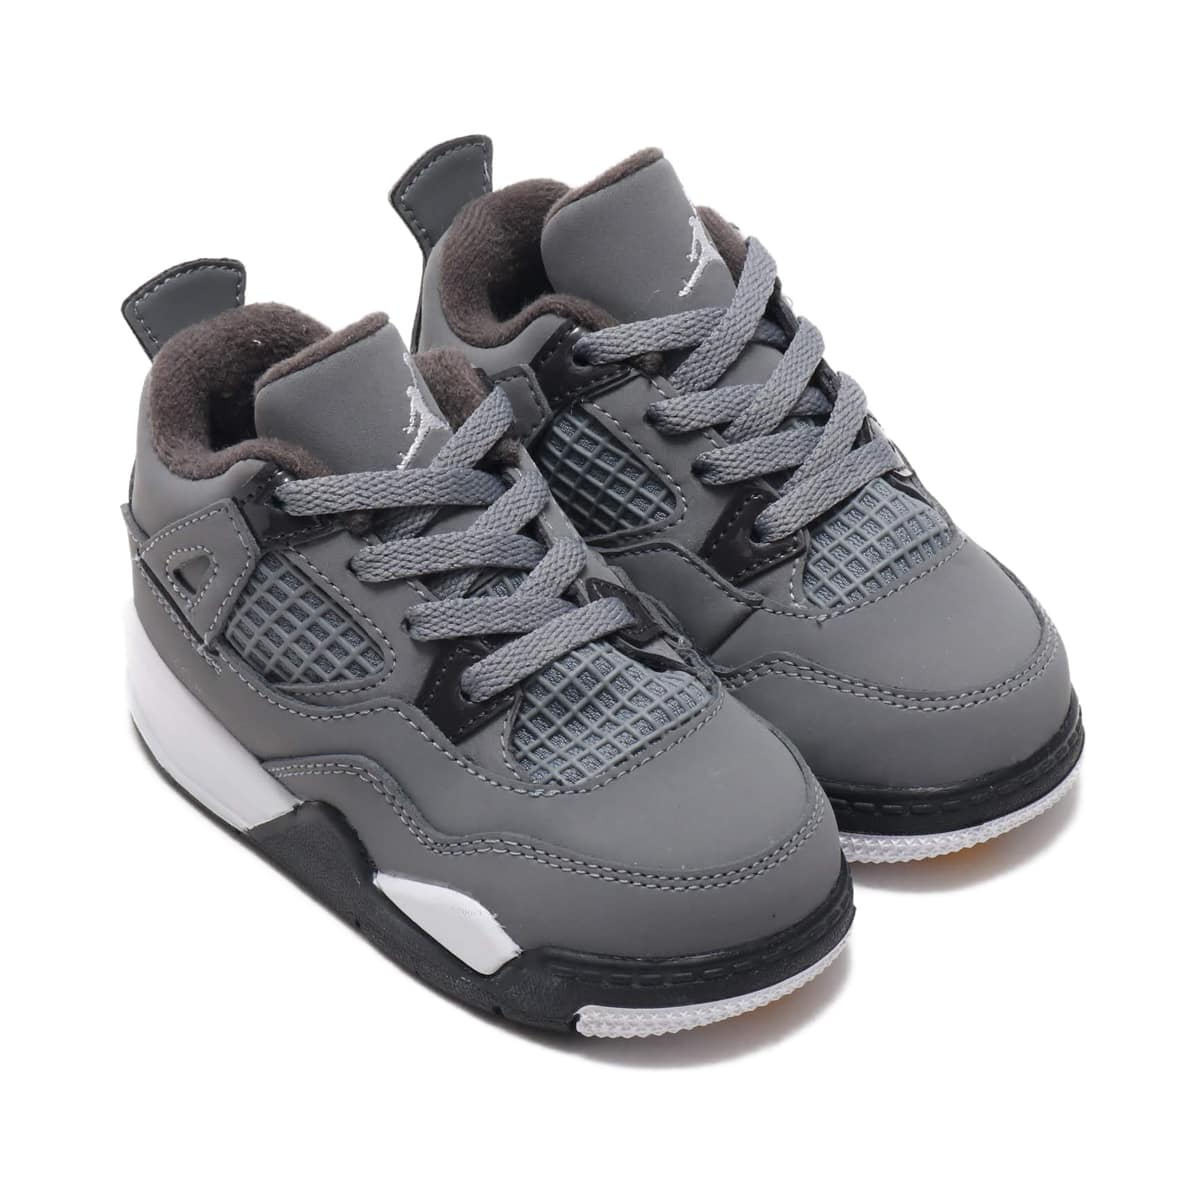 JORDAN BRAND JORDAN 4 RETRO TD COOL GREY/CHROME-DARK CHARCOAL 19FA-S_photo_large